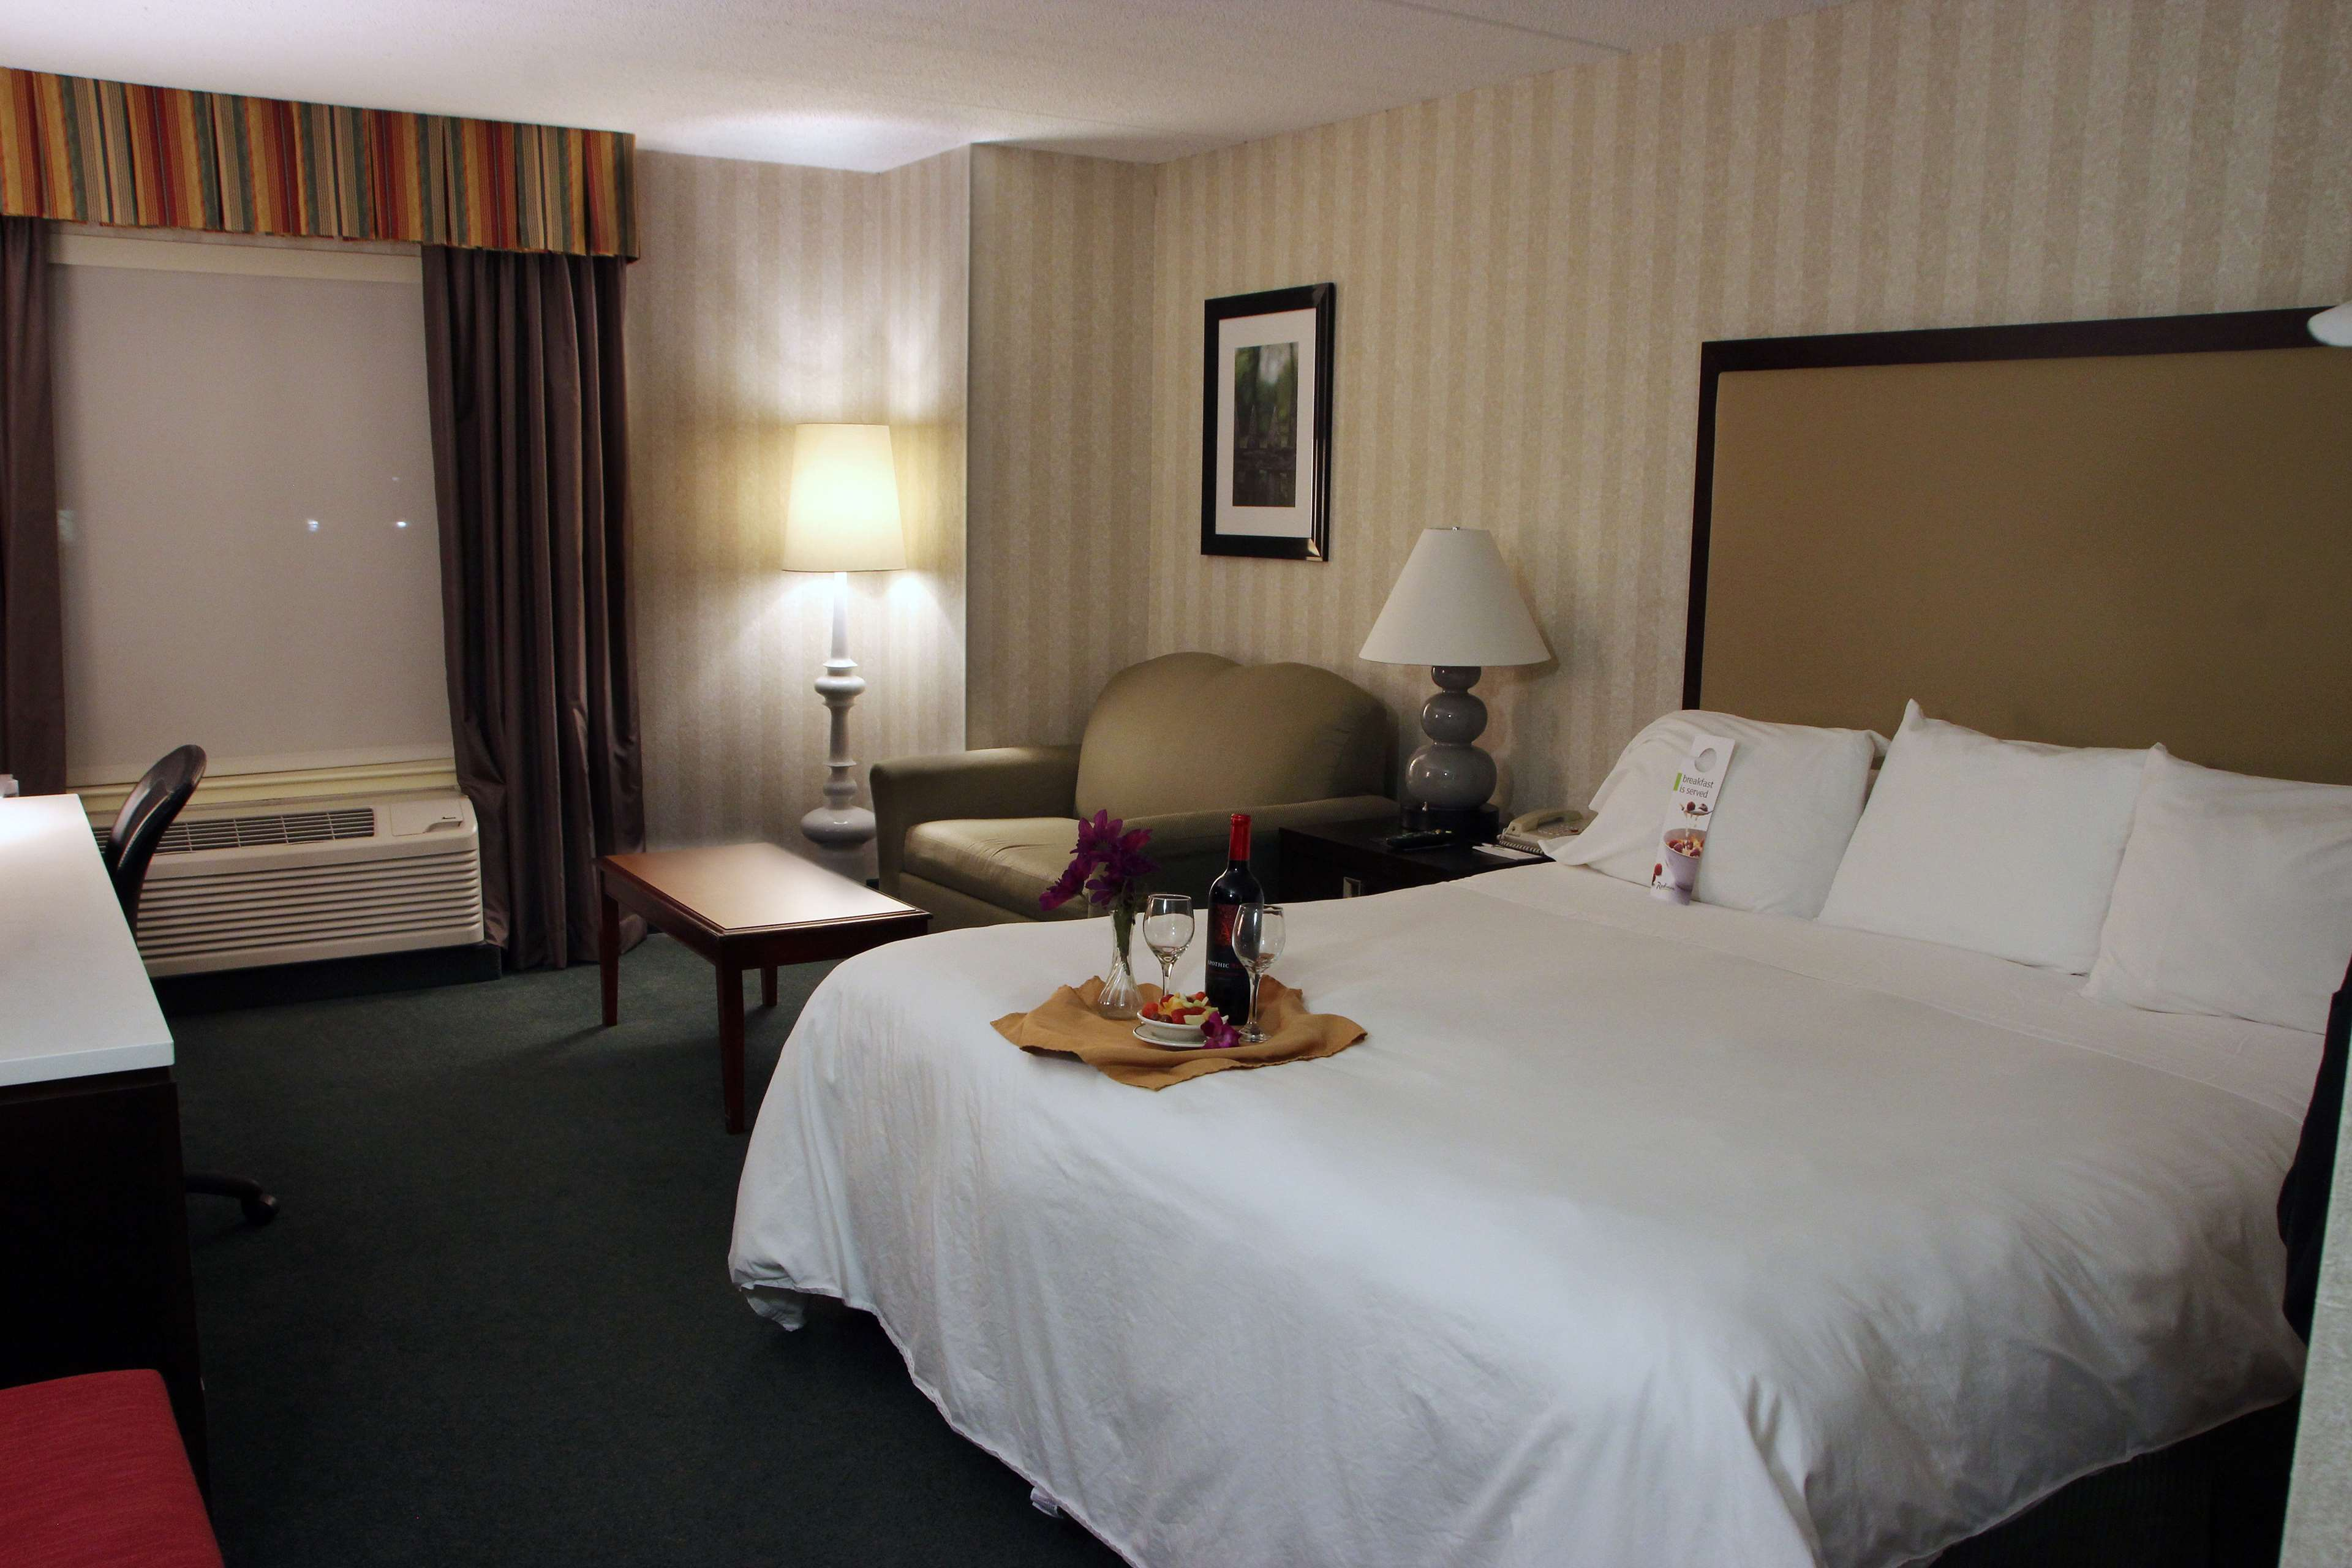 Radisson Hotel & Suites Chelmsford-Lowell - Closed in Chelmsford, MA, photo #11